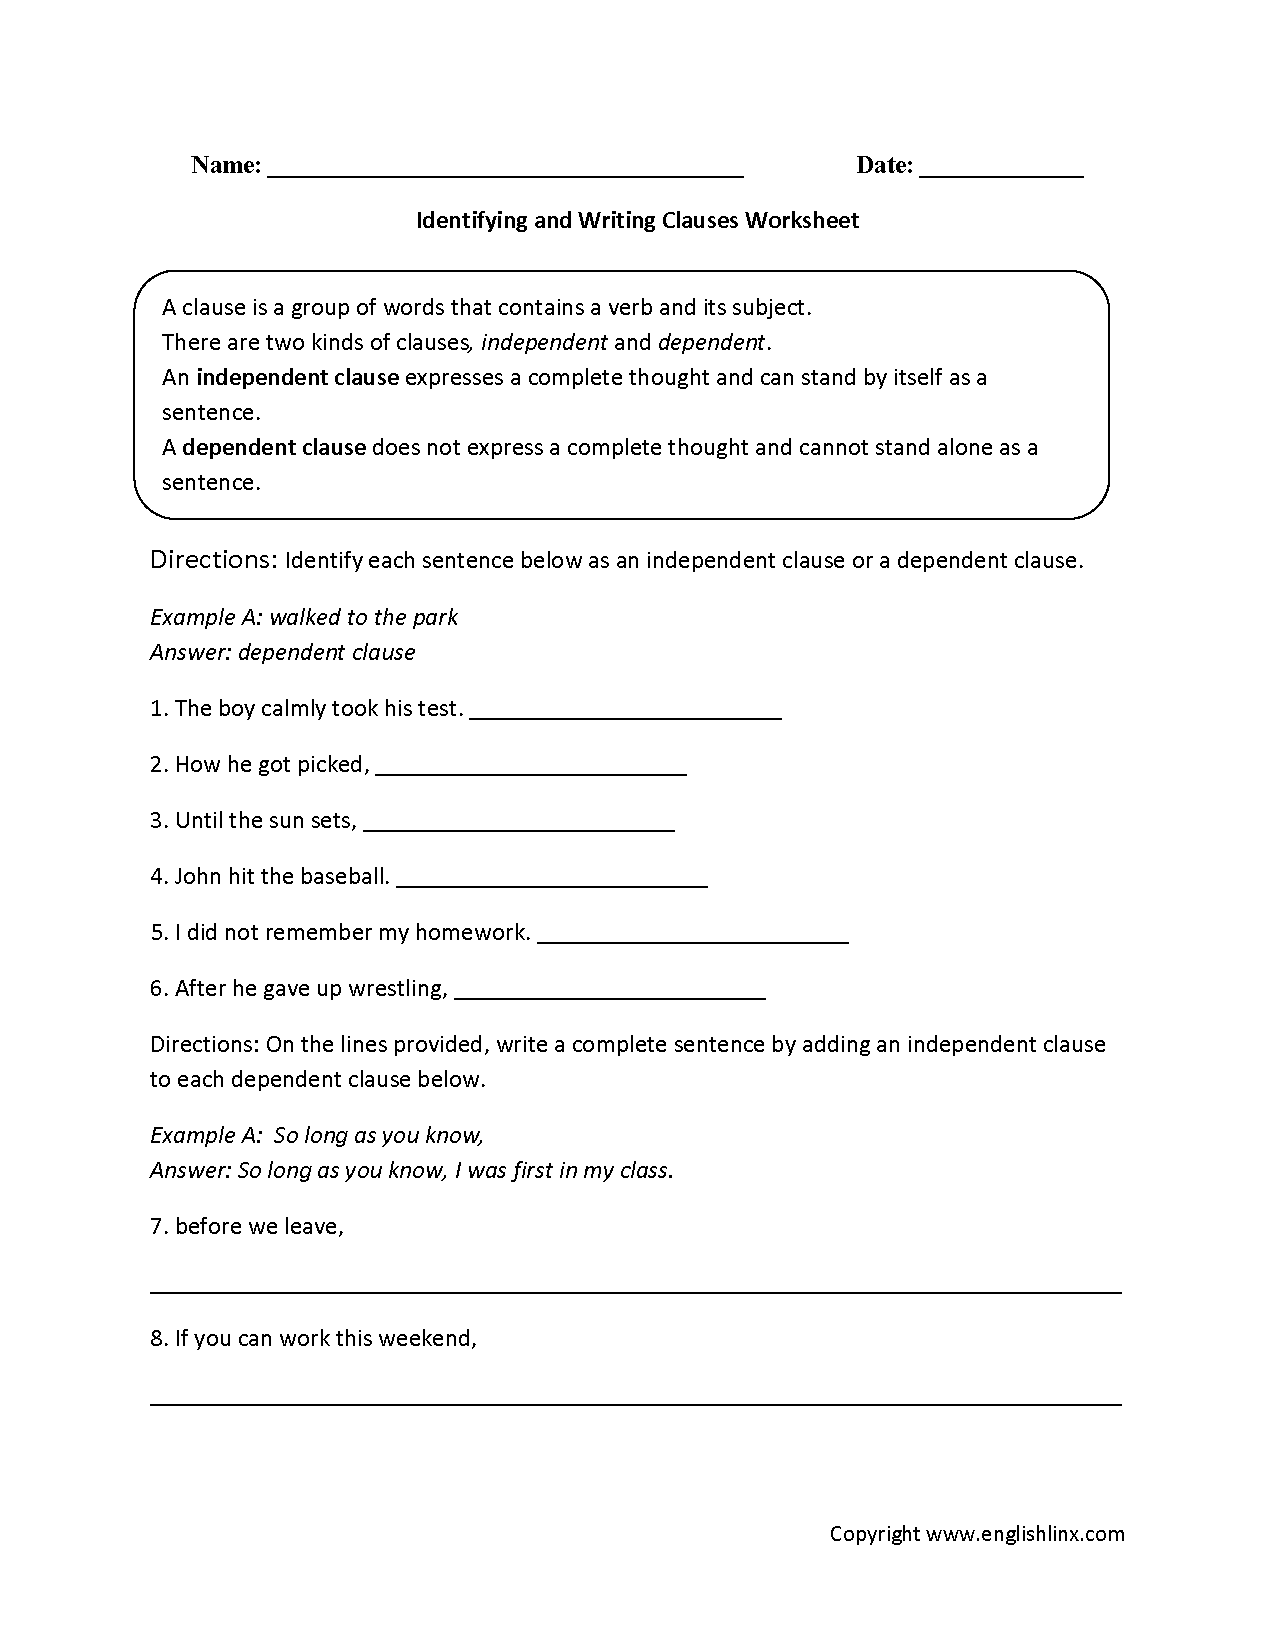 Worksheets Independent Clause Worksheet englishlinx com clauses worksheets identifying and writing worksheet